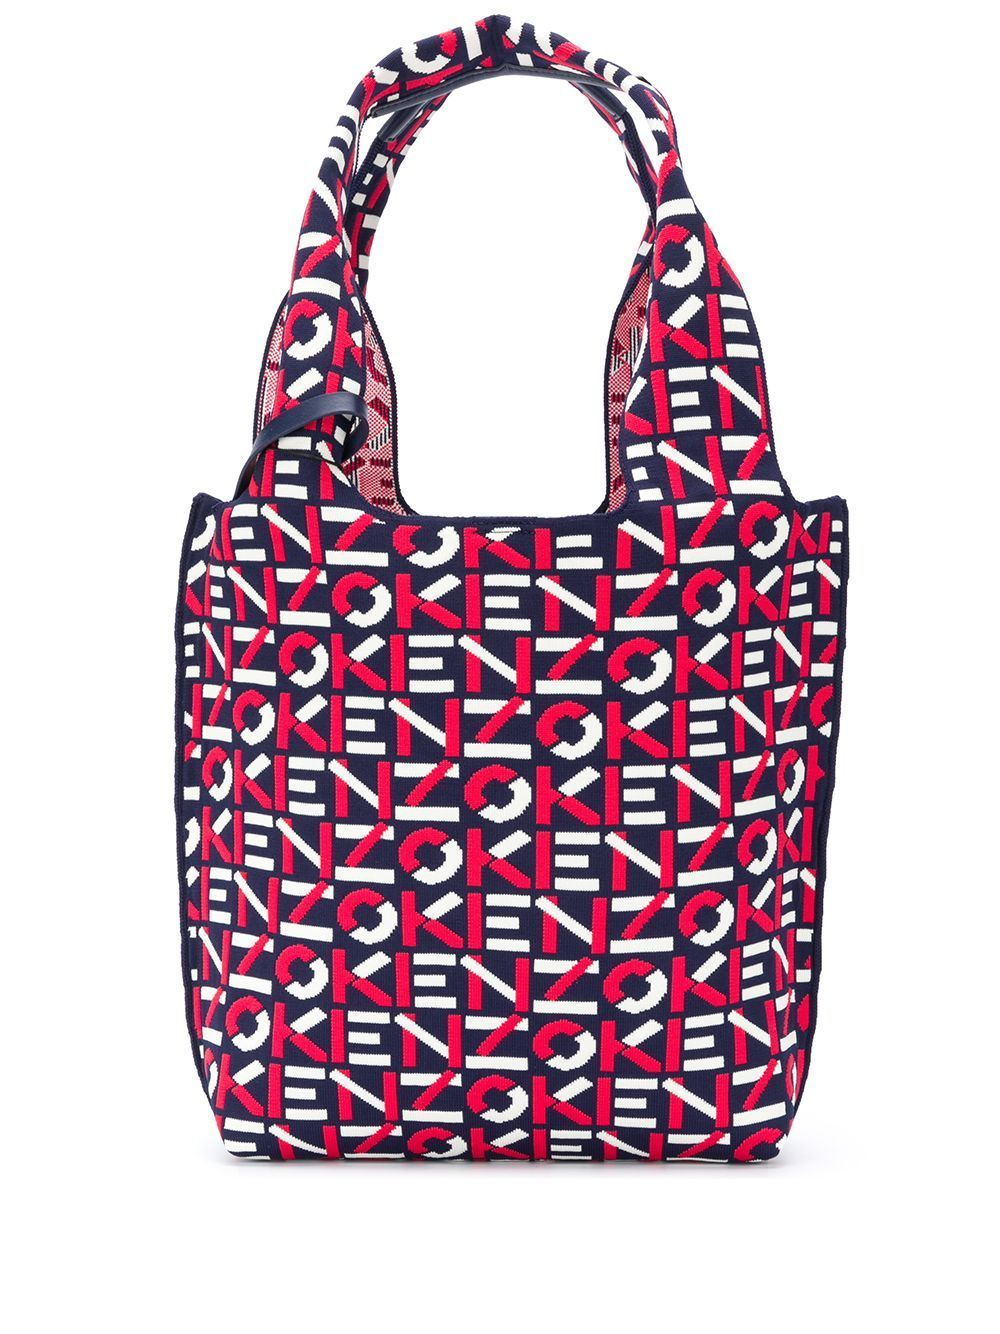 KENZO WOMEN All Over Logo Tote Bag Navy